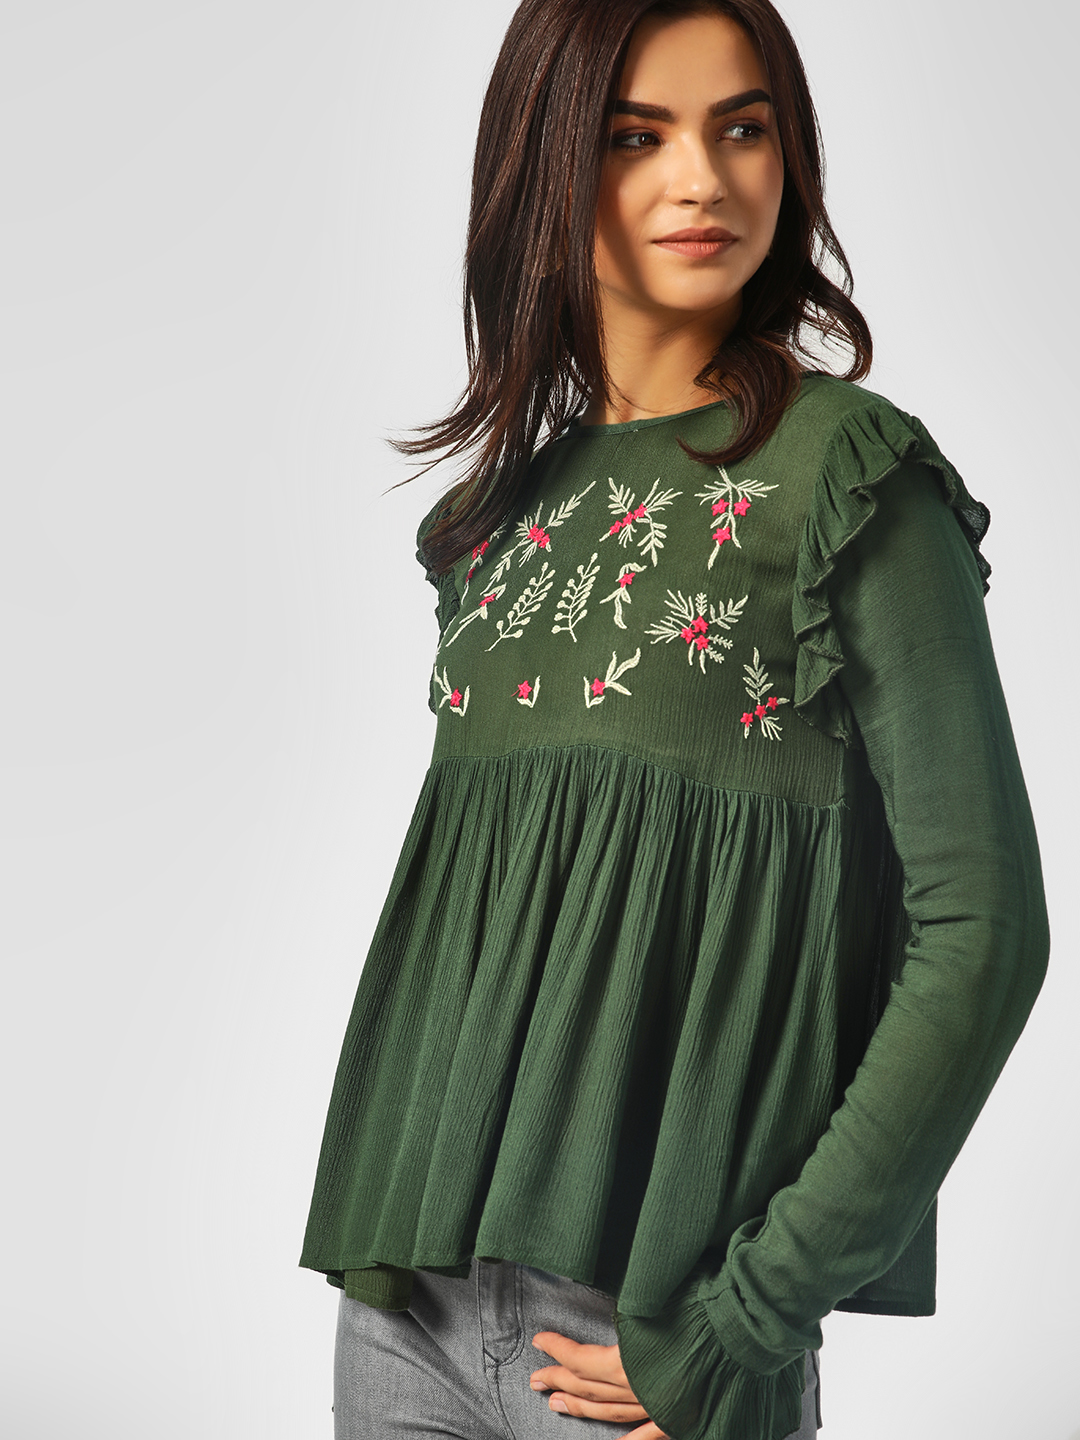 KOOVS Verdant Green Floral Embroidered Flared Top 1